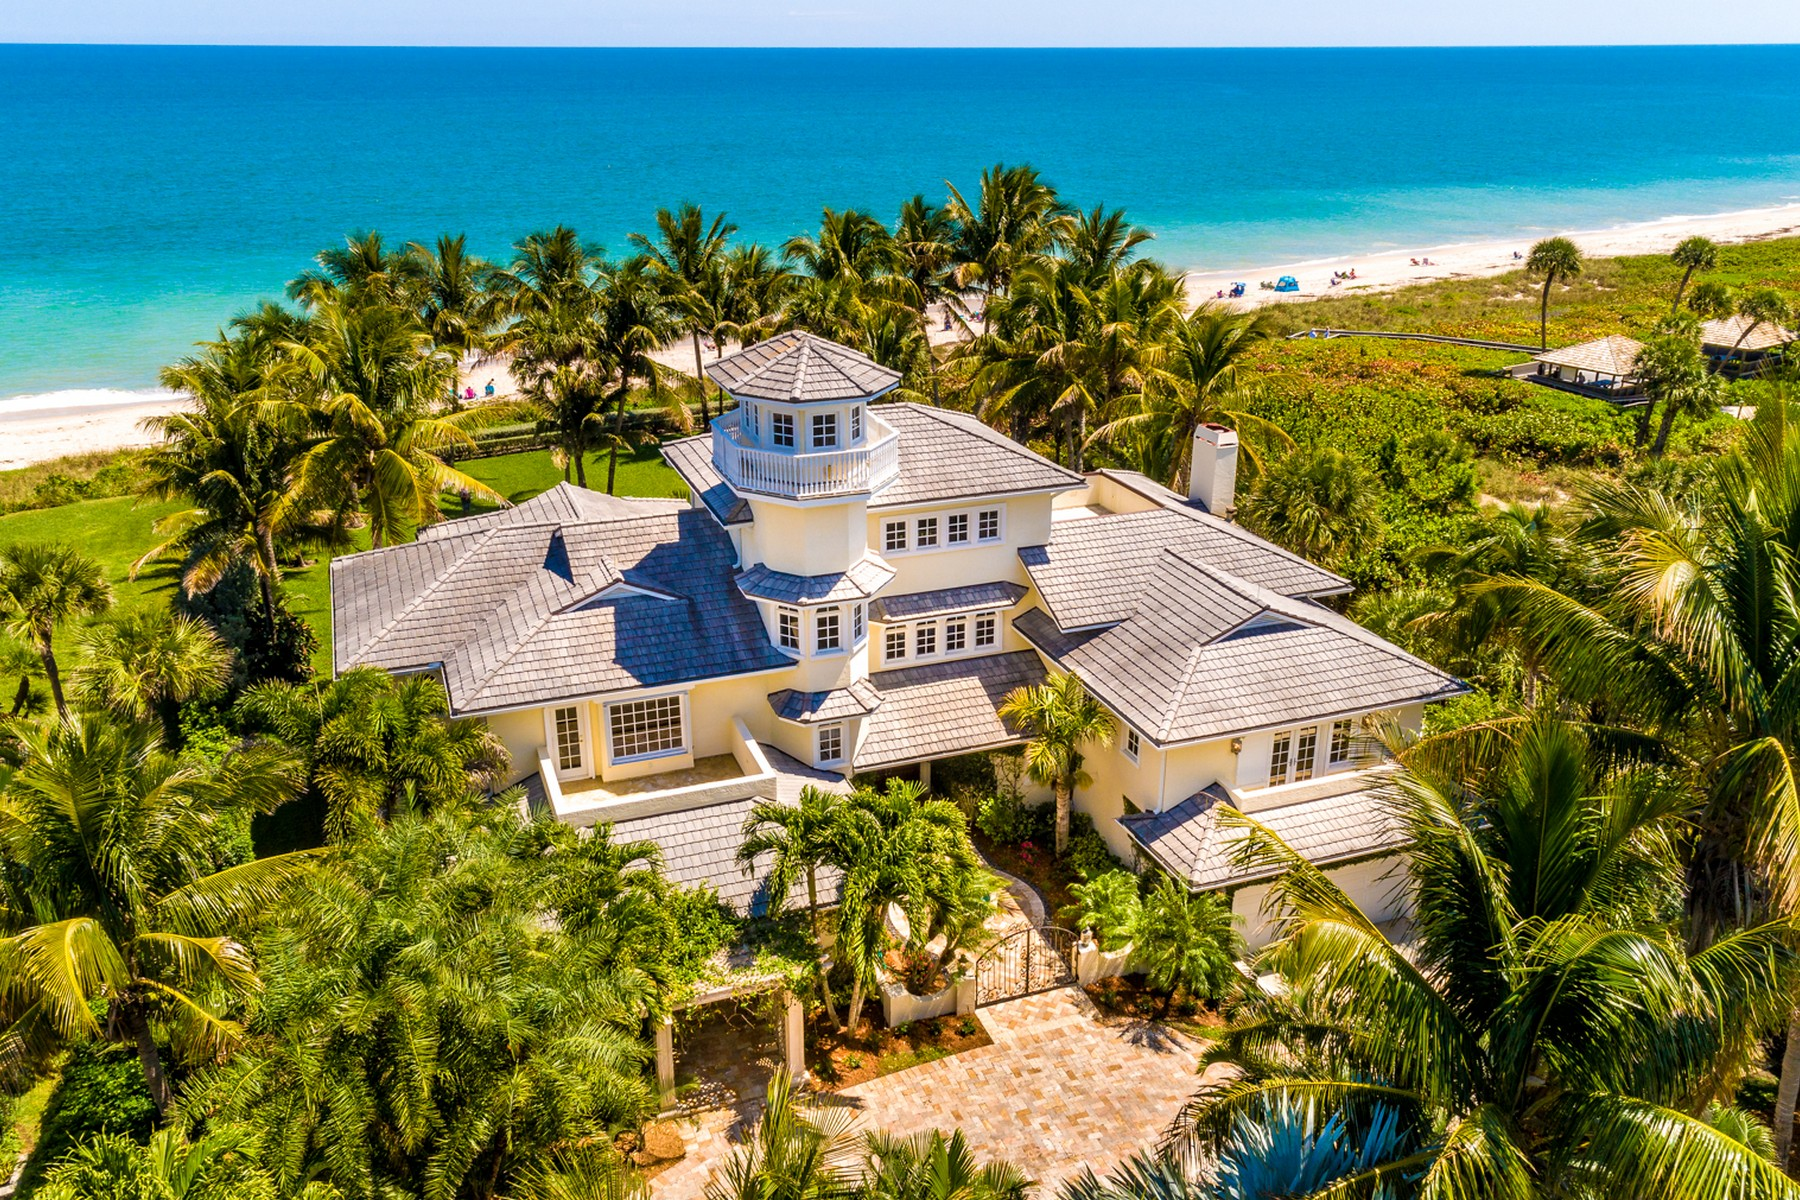 Condominium for Sale at Magnificent Oceanfront Estate 960 Reef Road Vero Beach, Florida 32963 United States